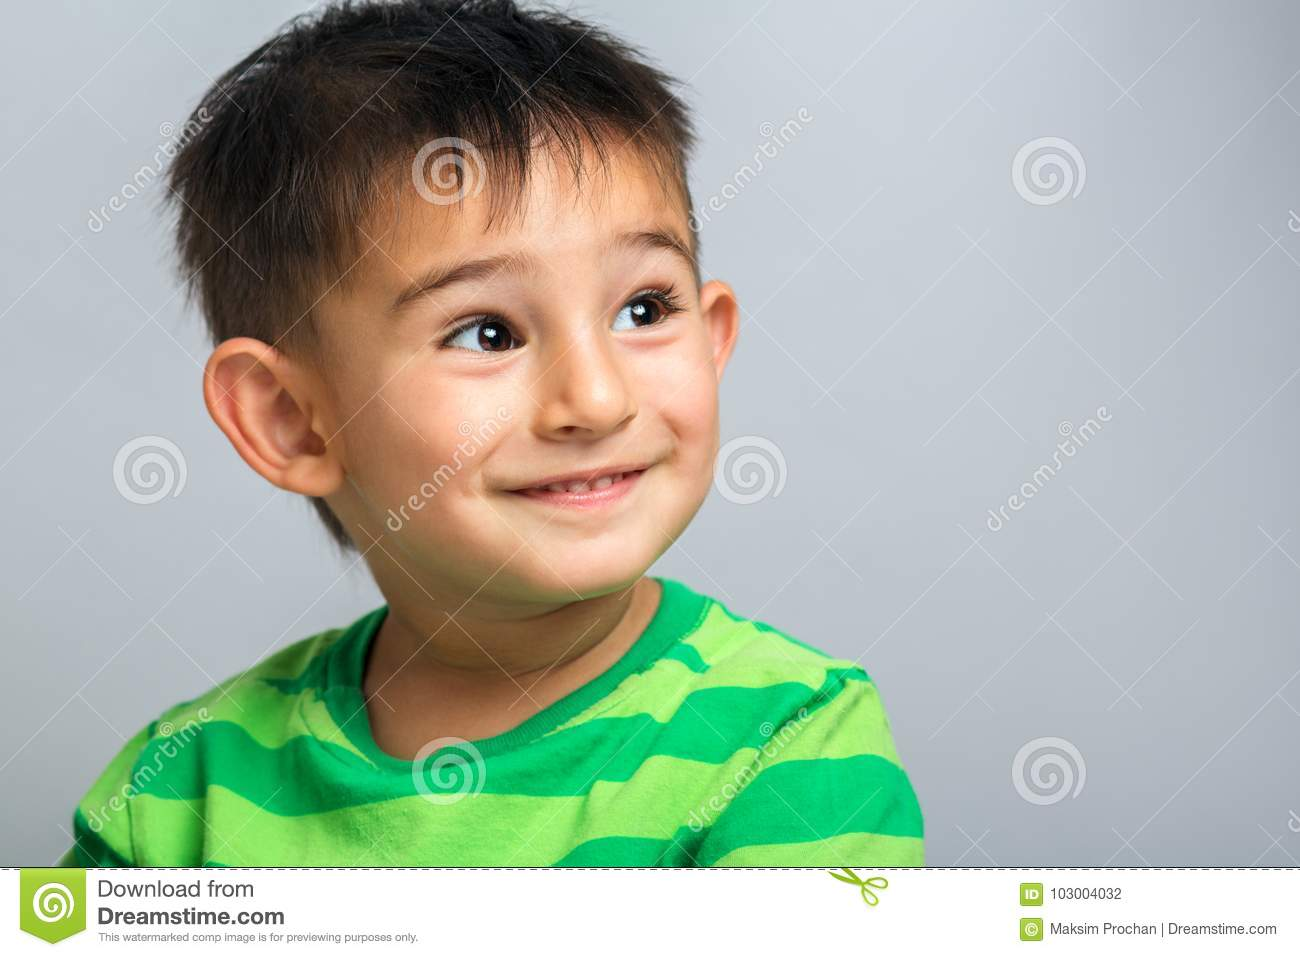 Happy boy face, portrait of a child on a gray background